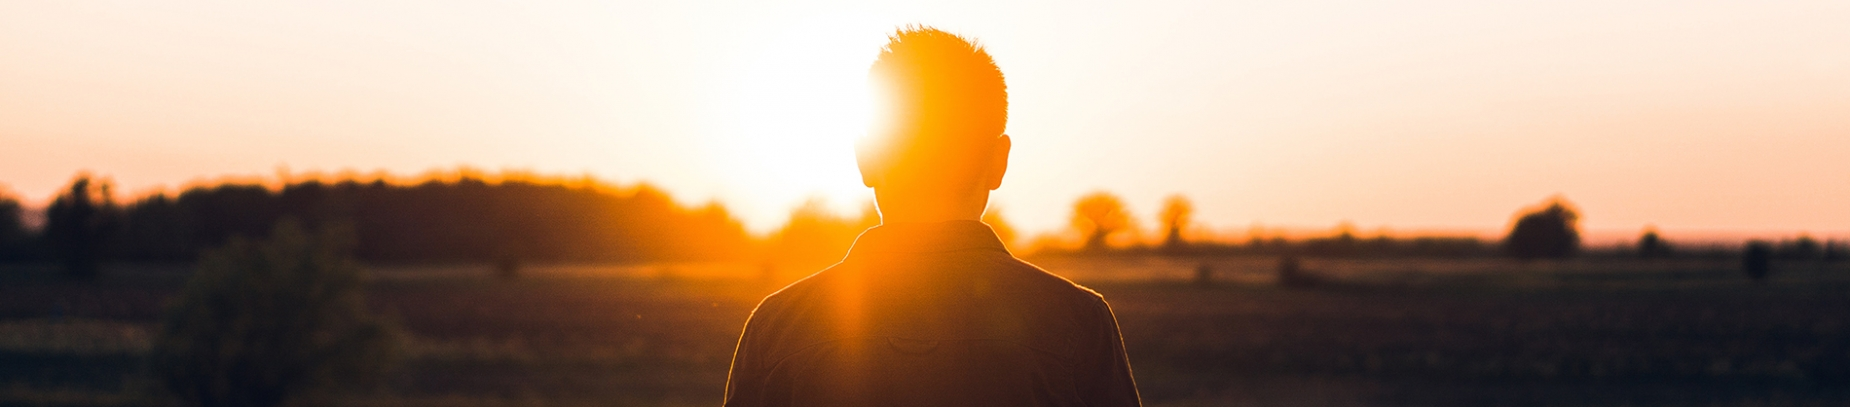 A guy stood looking into a sunset across a field